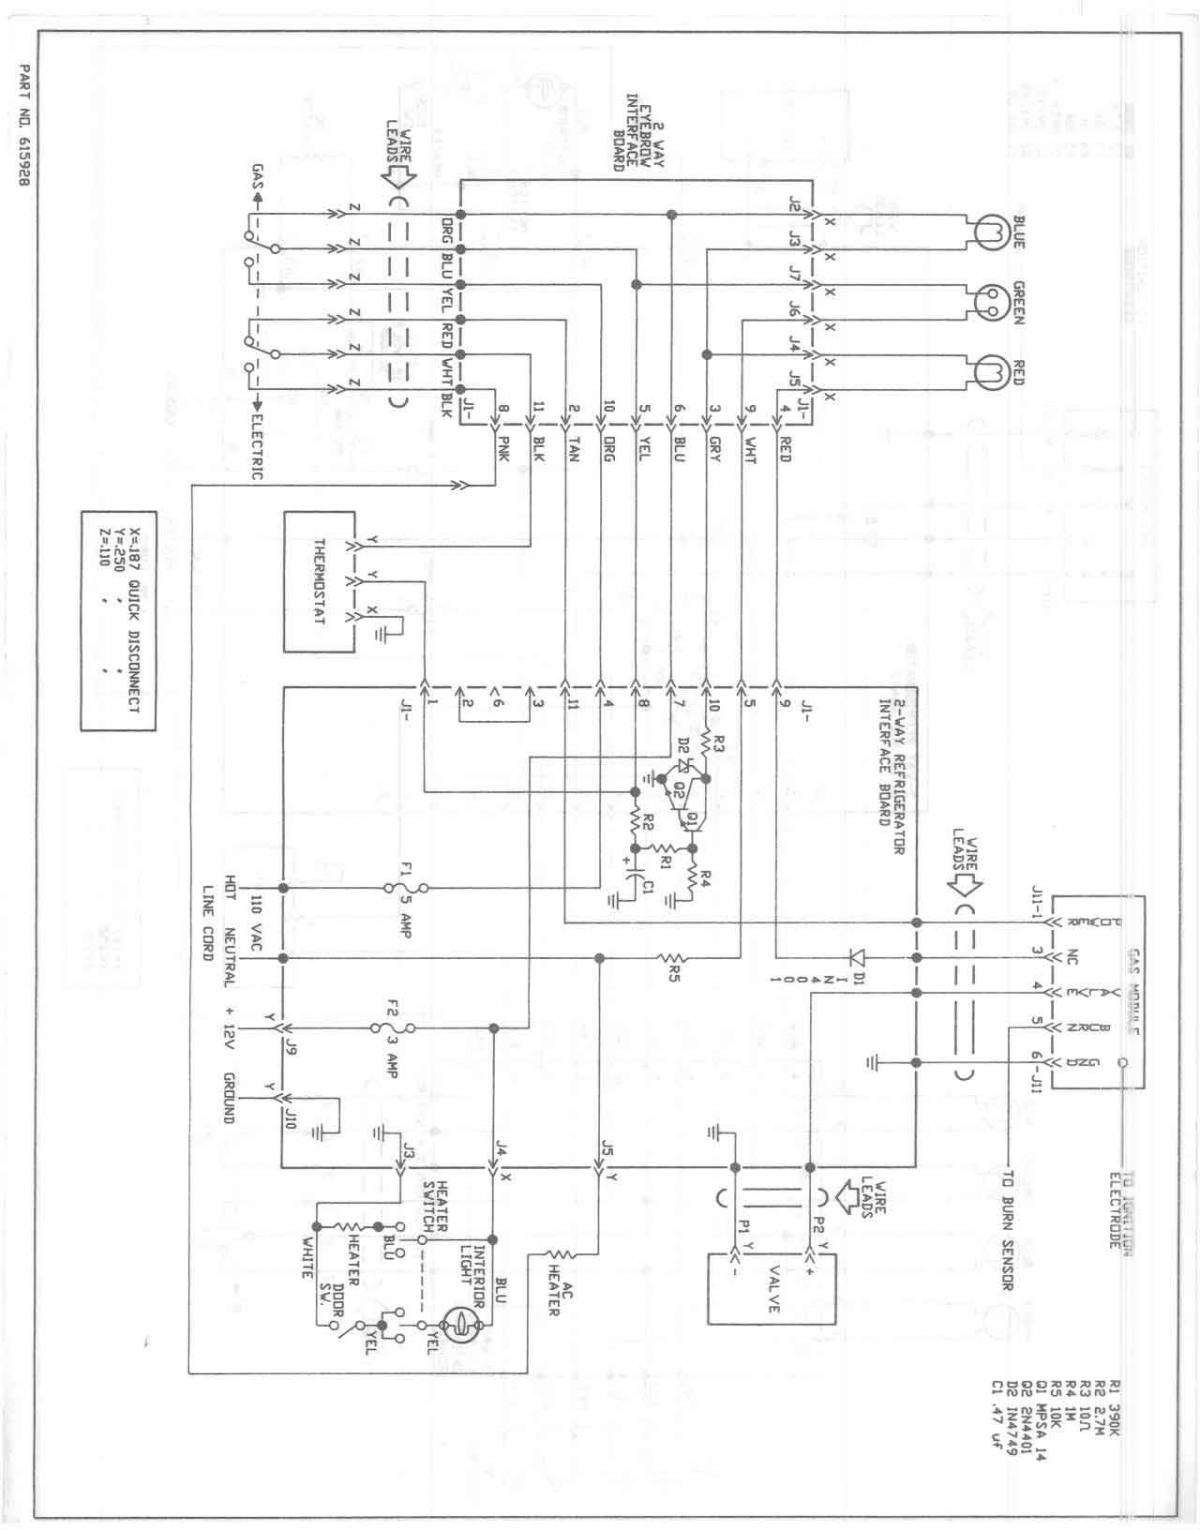 Installing circuit board for Norcold 838EG2? - Technical Tips and Tricks -  Escapees Discussion ForumEscapees Discussion Forum